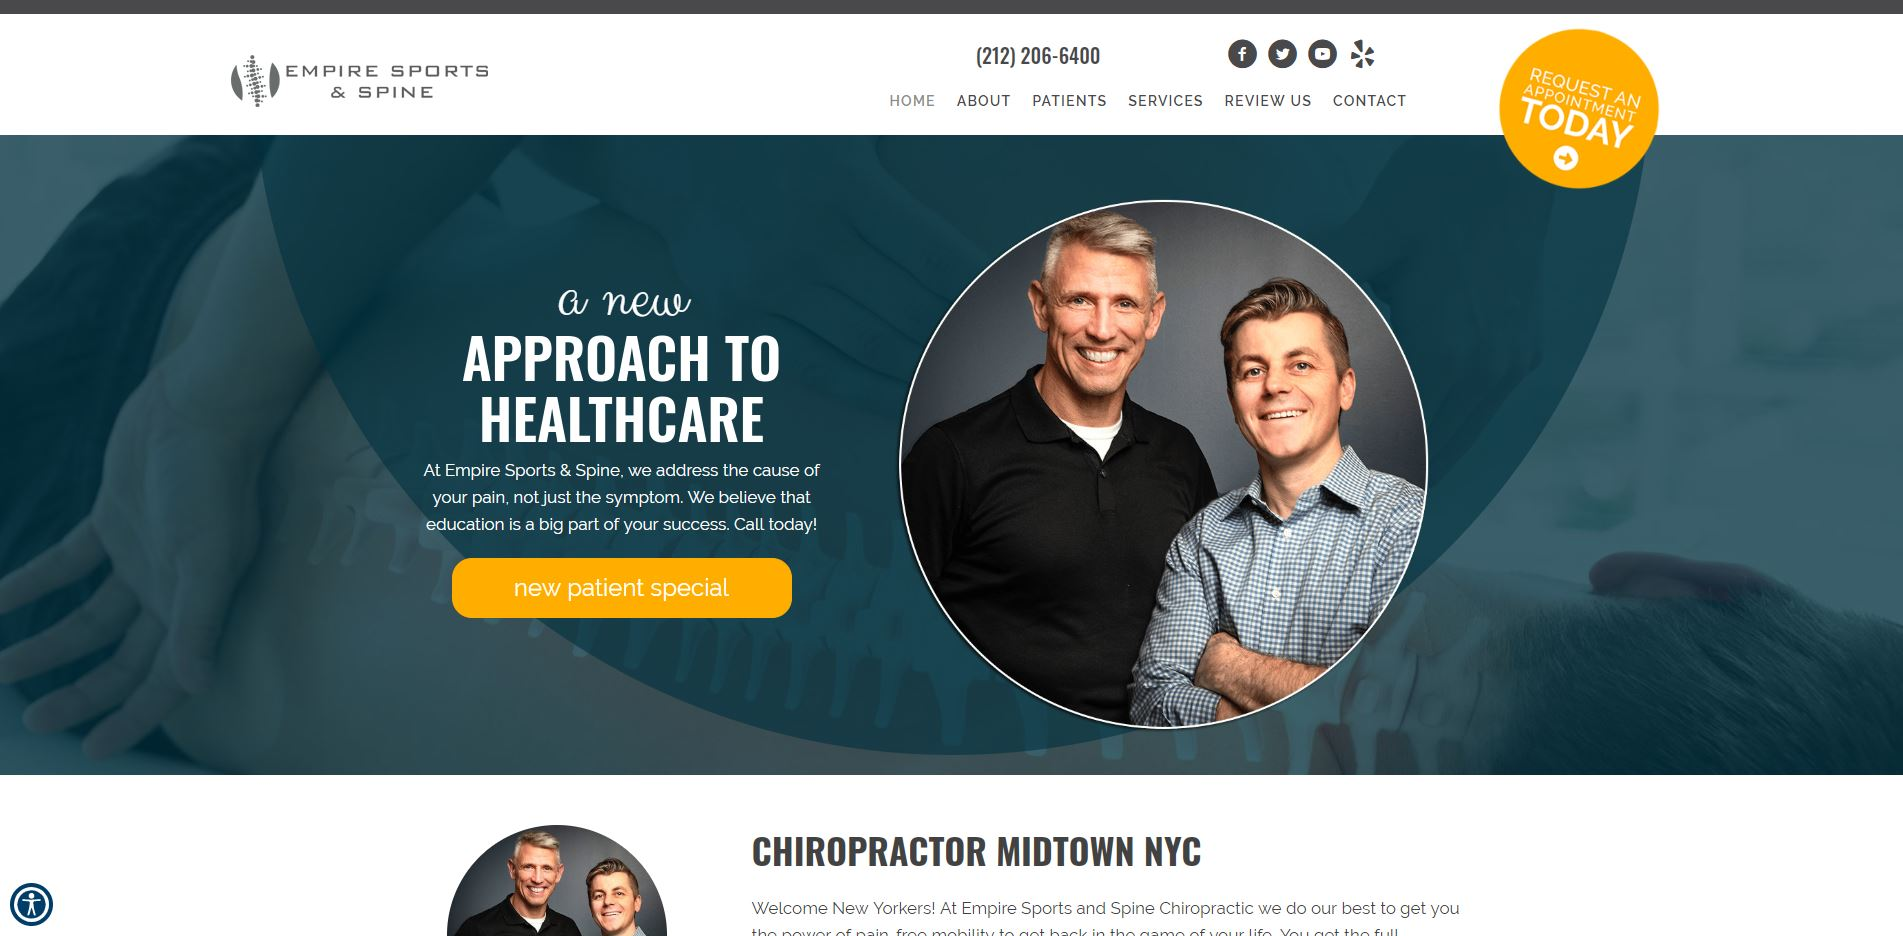 Chiropractor in New York